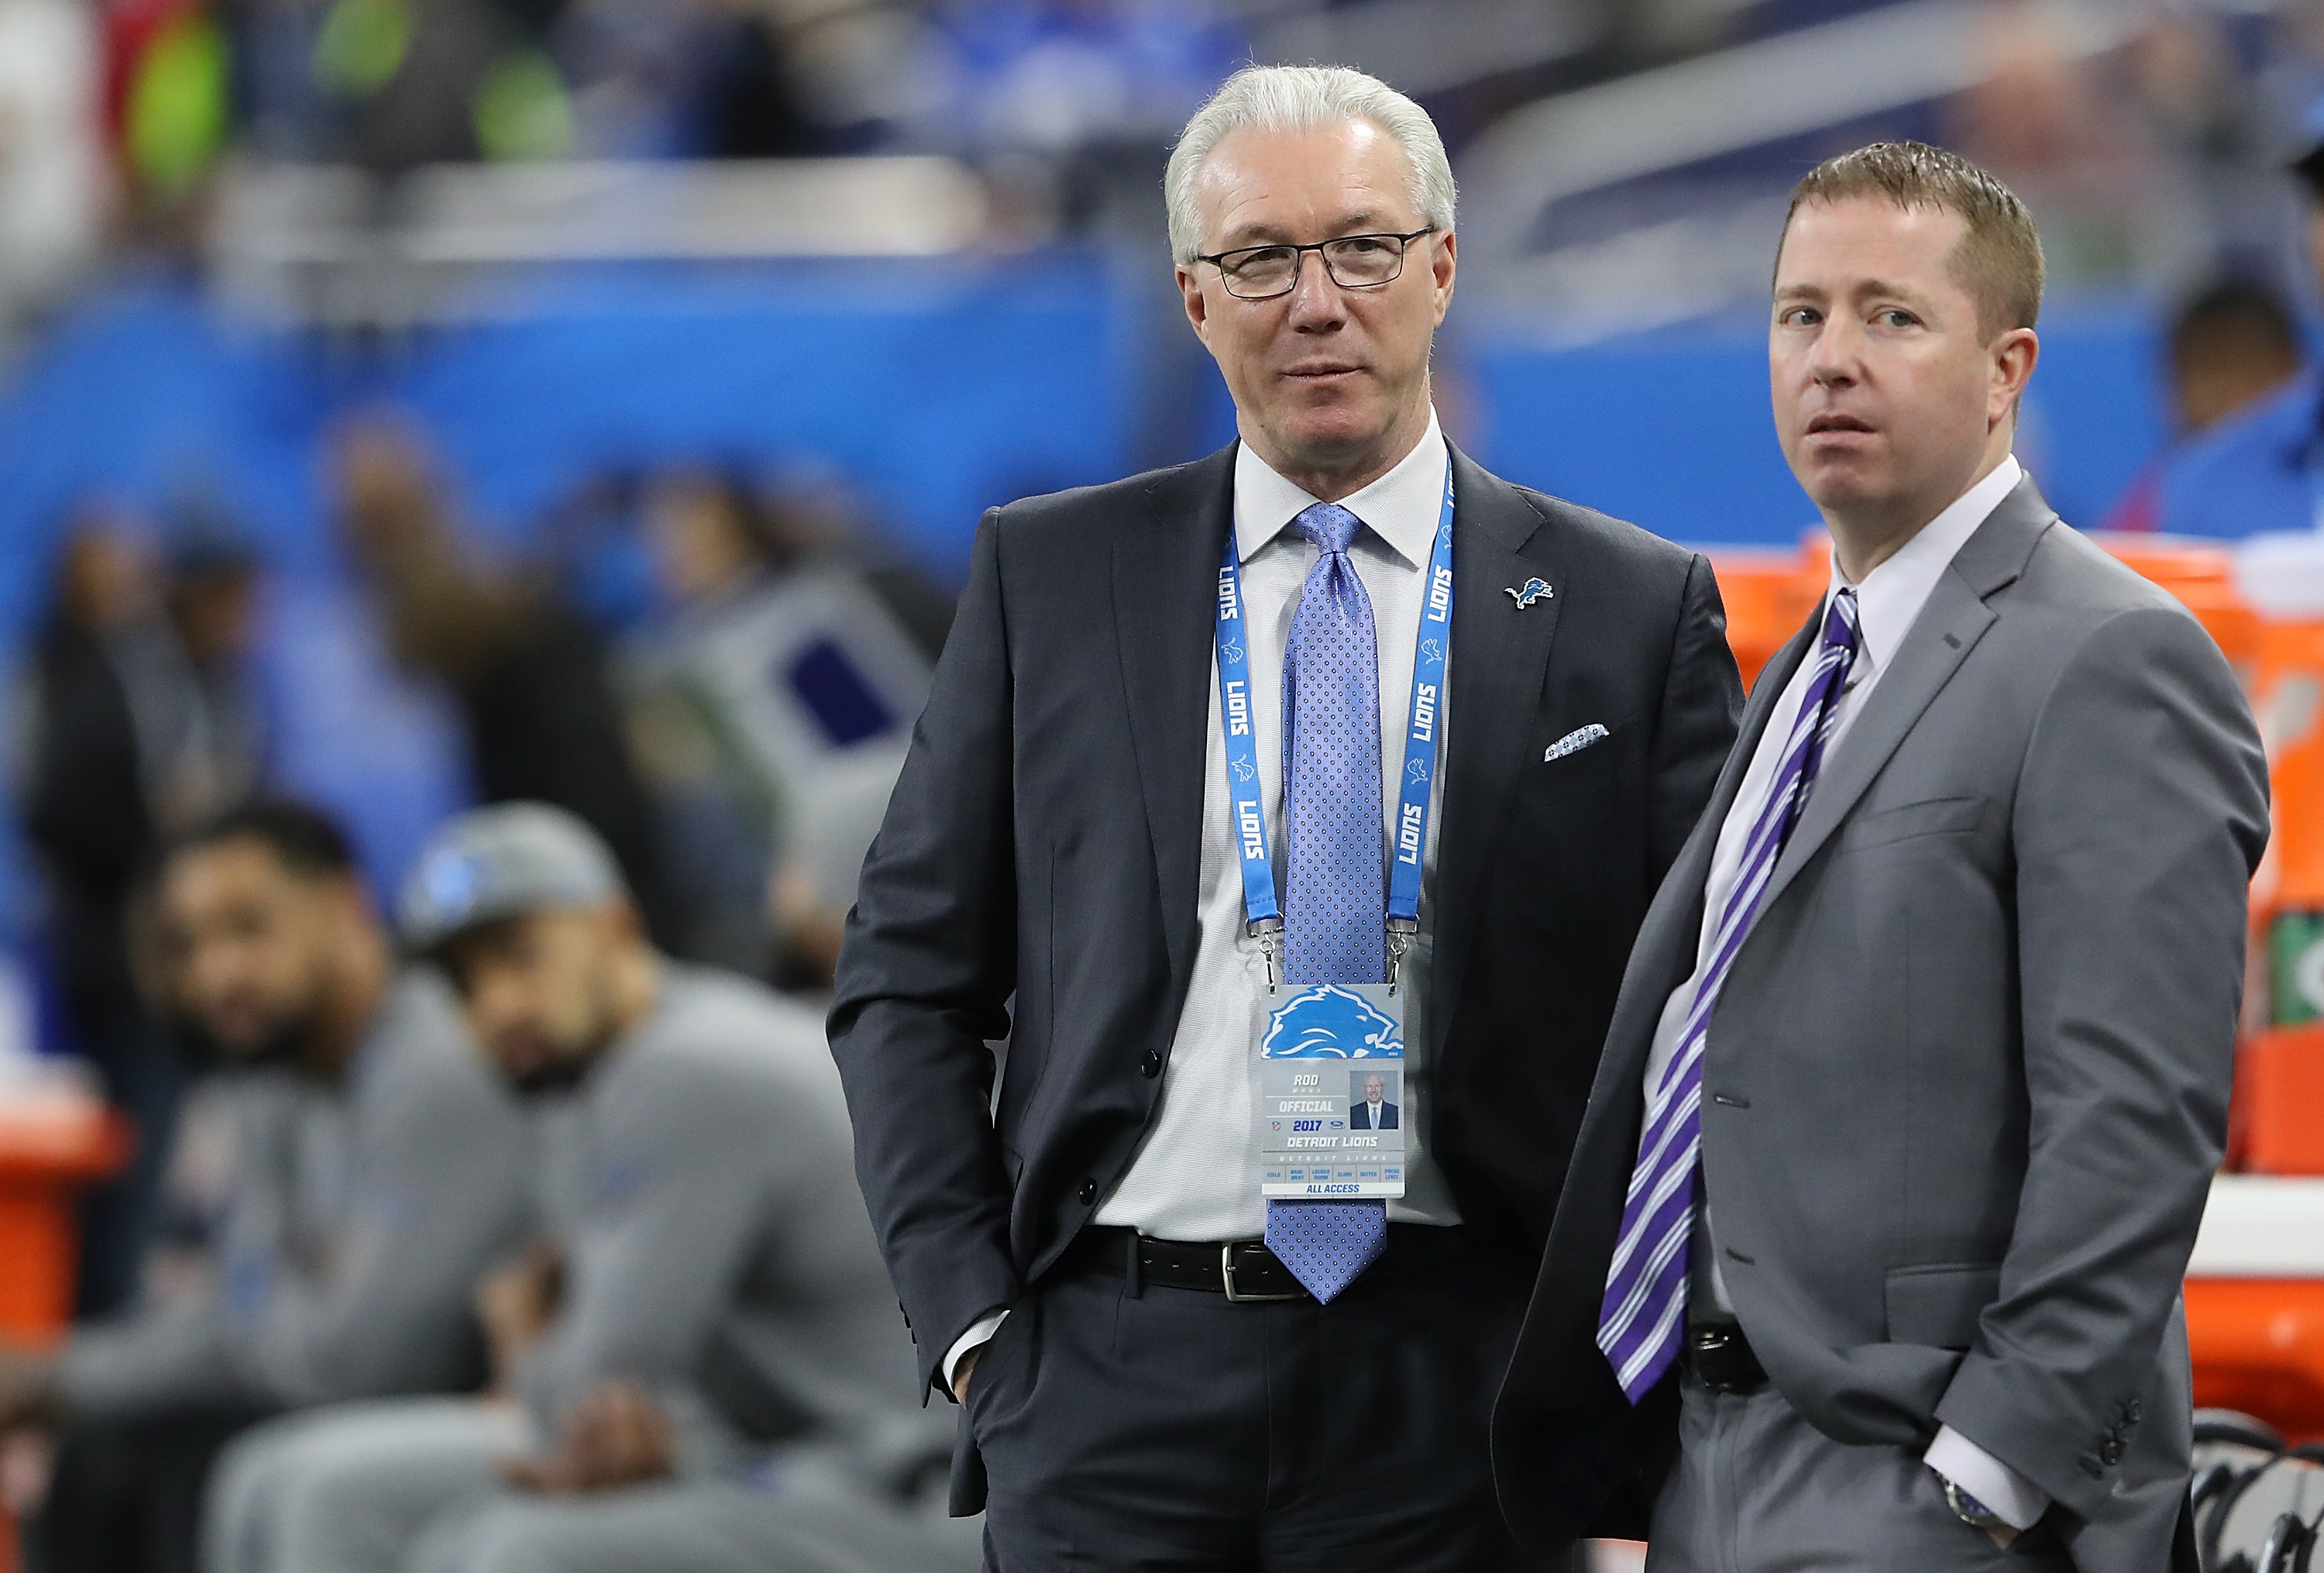 JUST IN: Detroit Lions complete first head coaching interview